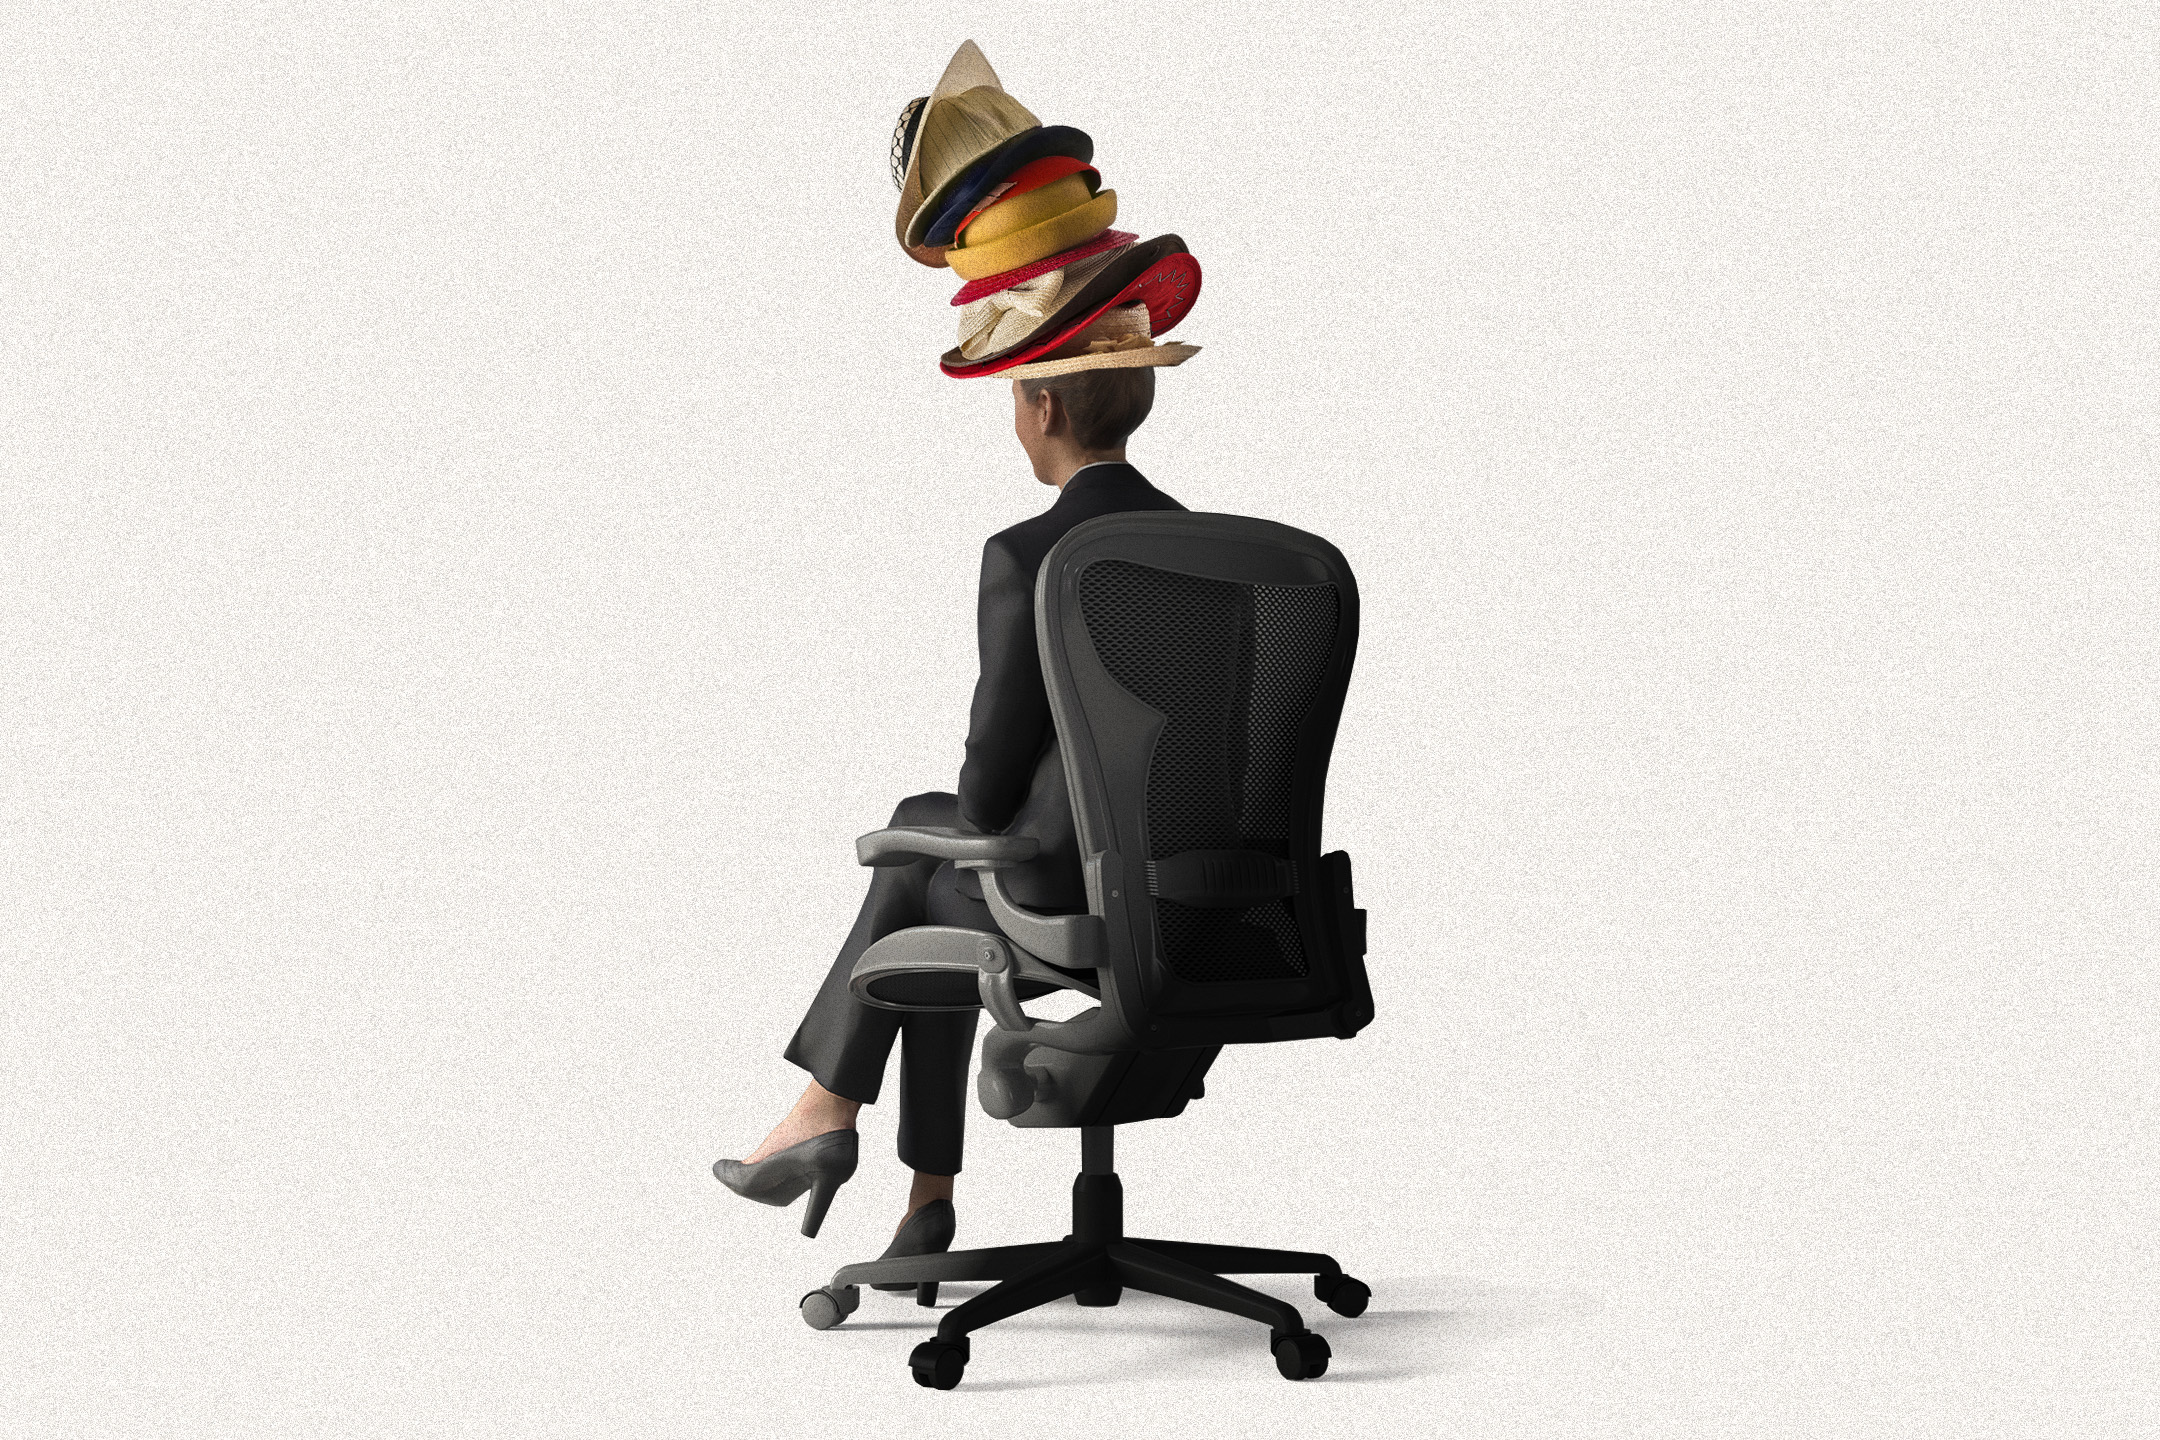 As retailers cut back and consolidate the ranks, executives find themselves wearing several hats.